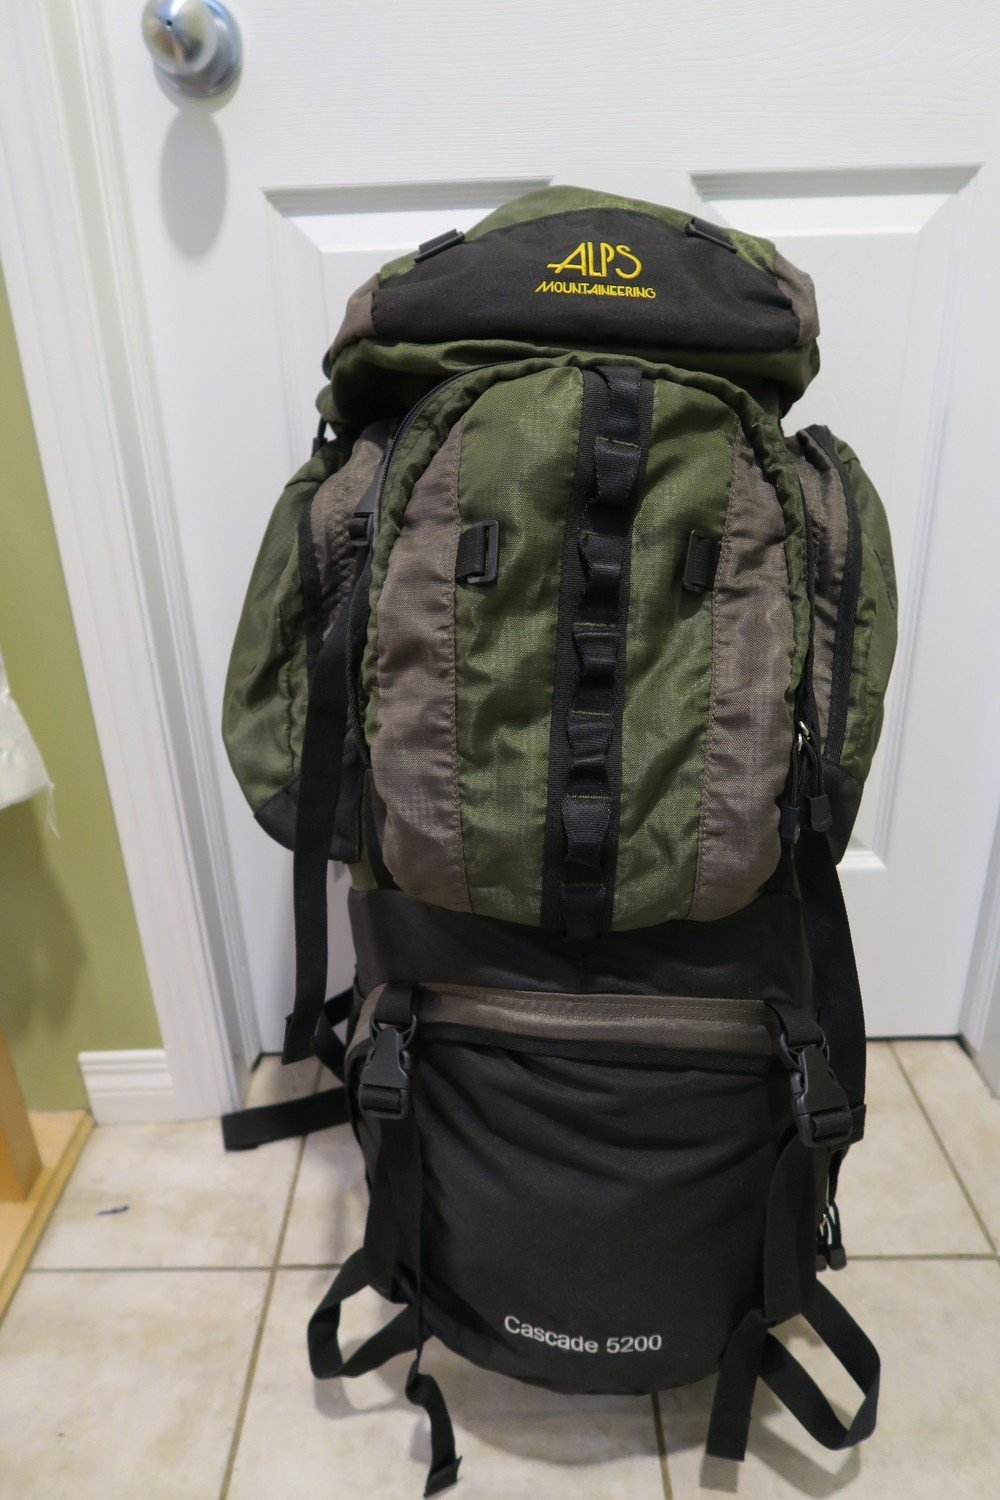 ALPS Mountaineering Cascade 5200 (85L) Expediton Backpack - Used